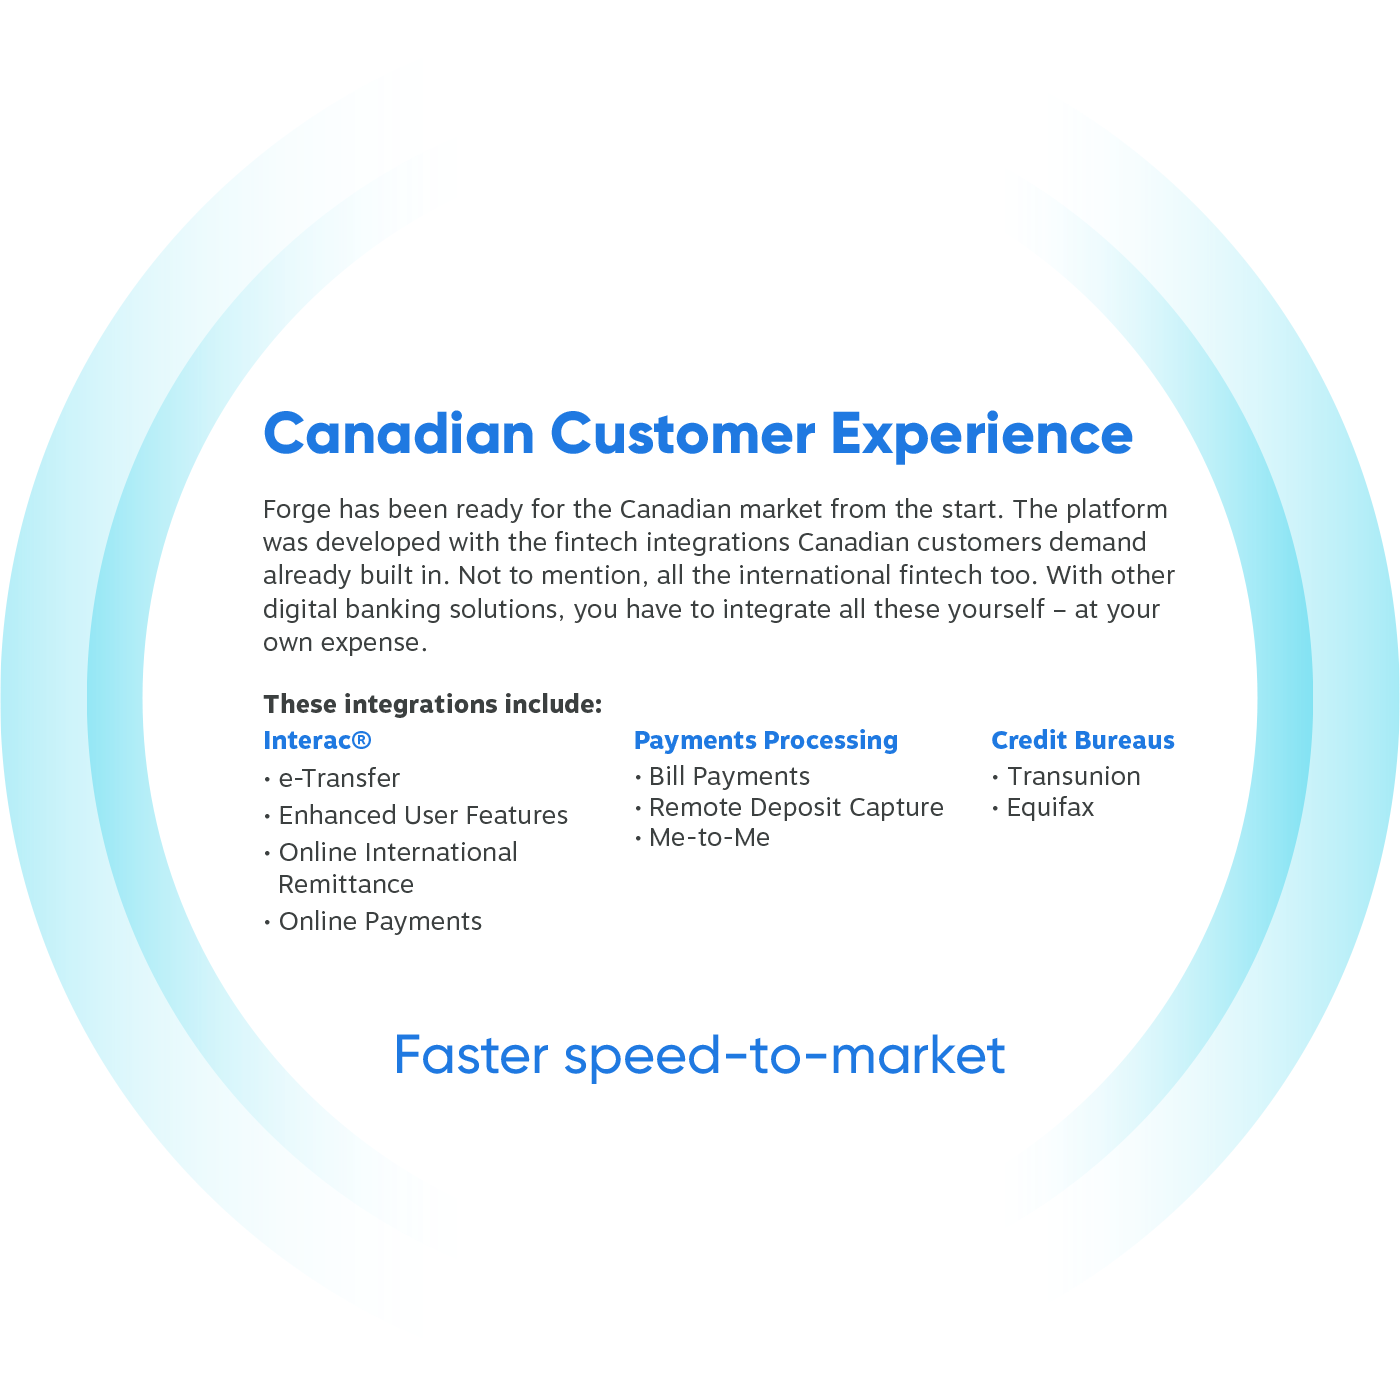 Canadian Customer Experience Layer